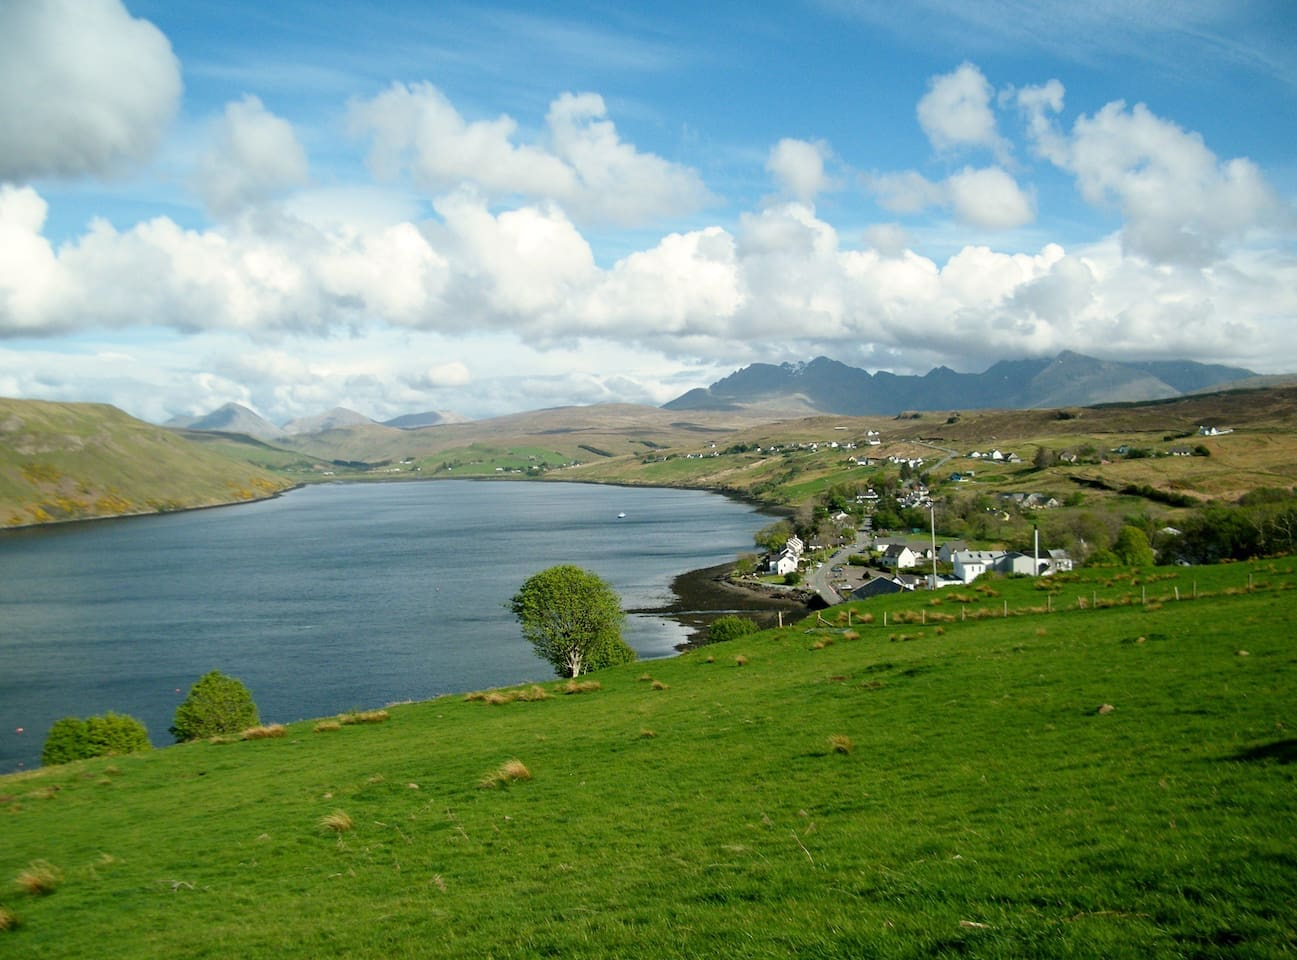 View of Loch Harport, Carbost and the Cuillin